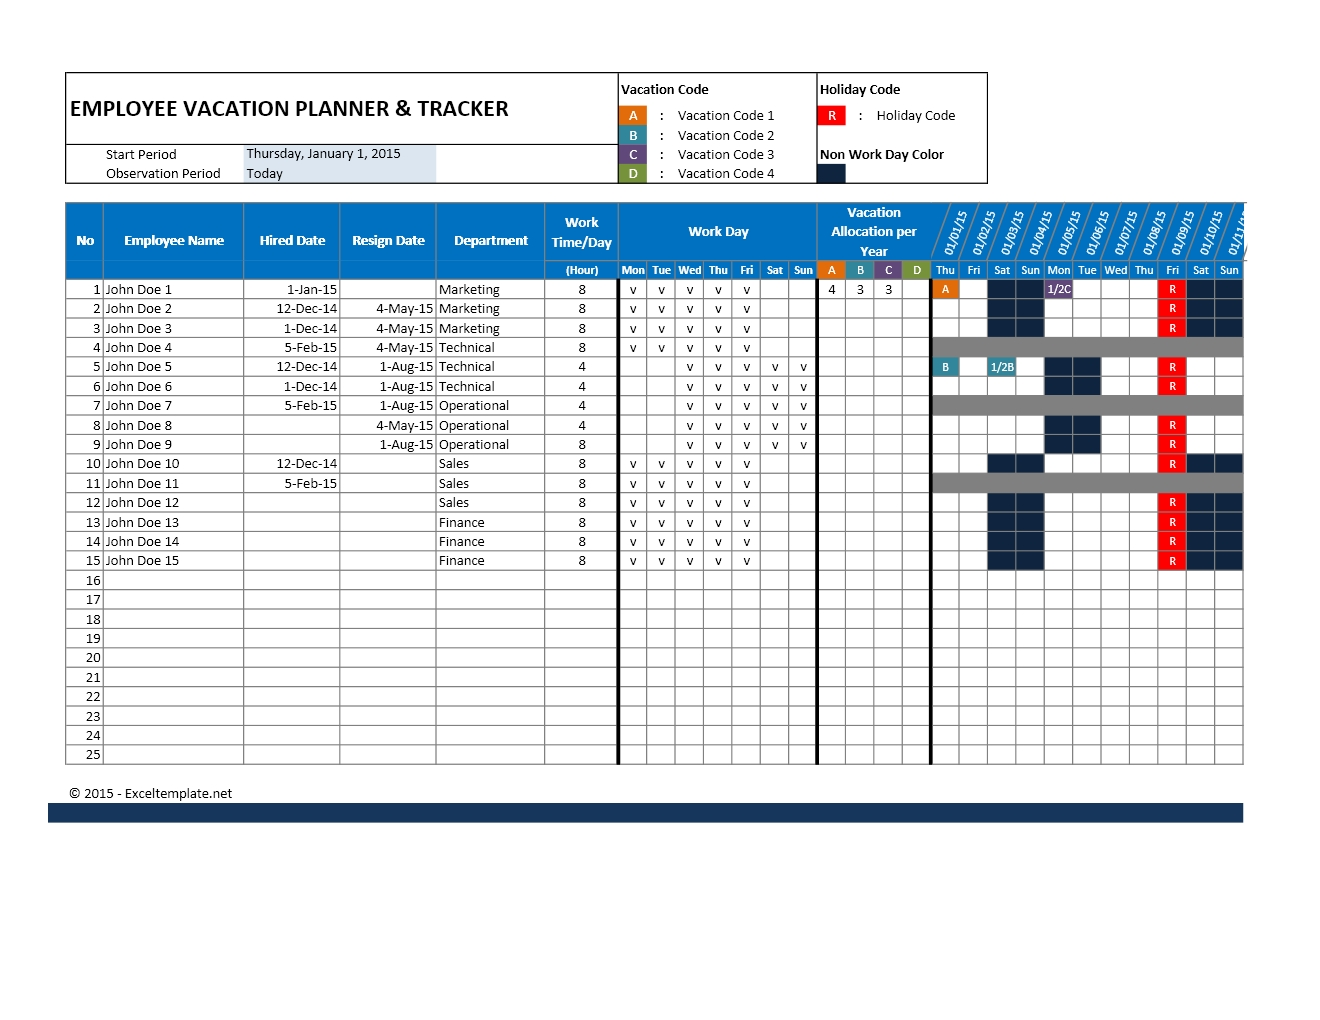 Vacation Calendar Template 2015 - Yeniscale.co  Year At A Glance Calendar - Vacation Schedule For Staff